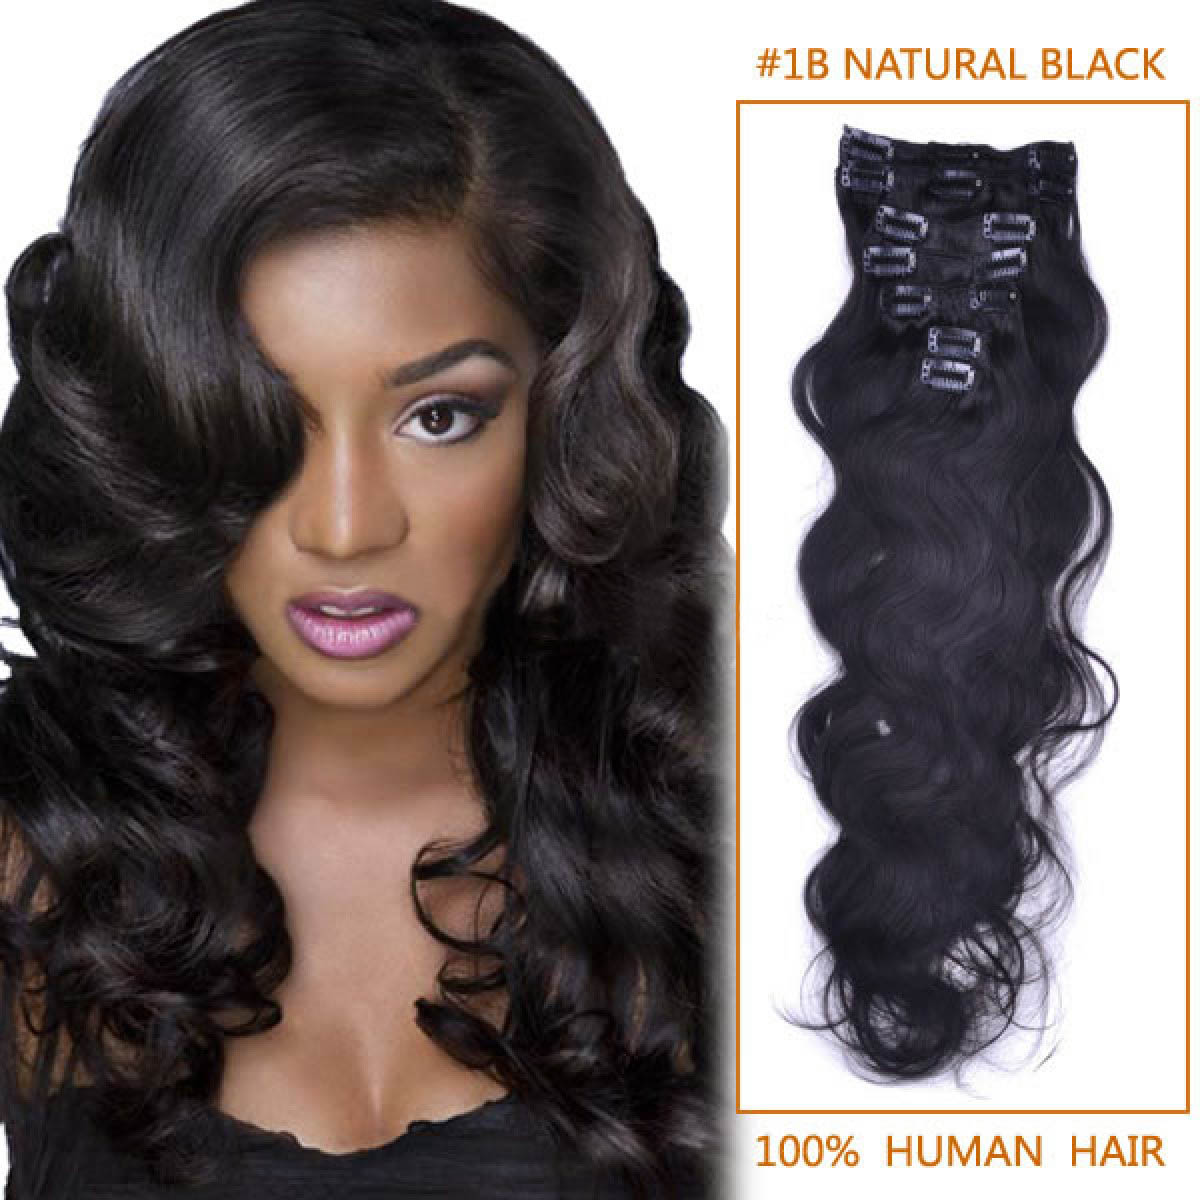 20 Inch  1b Natural Black Wavy Clip In Remy Human Hair Extensions 7pcs 123780fec9aa